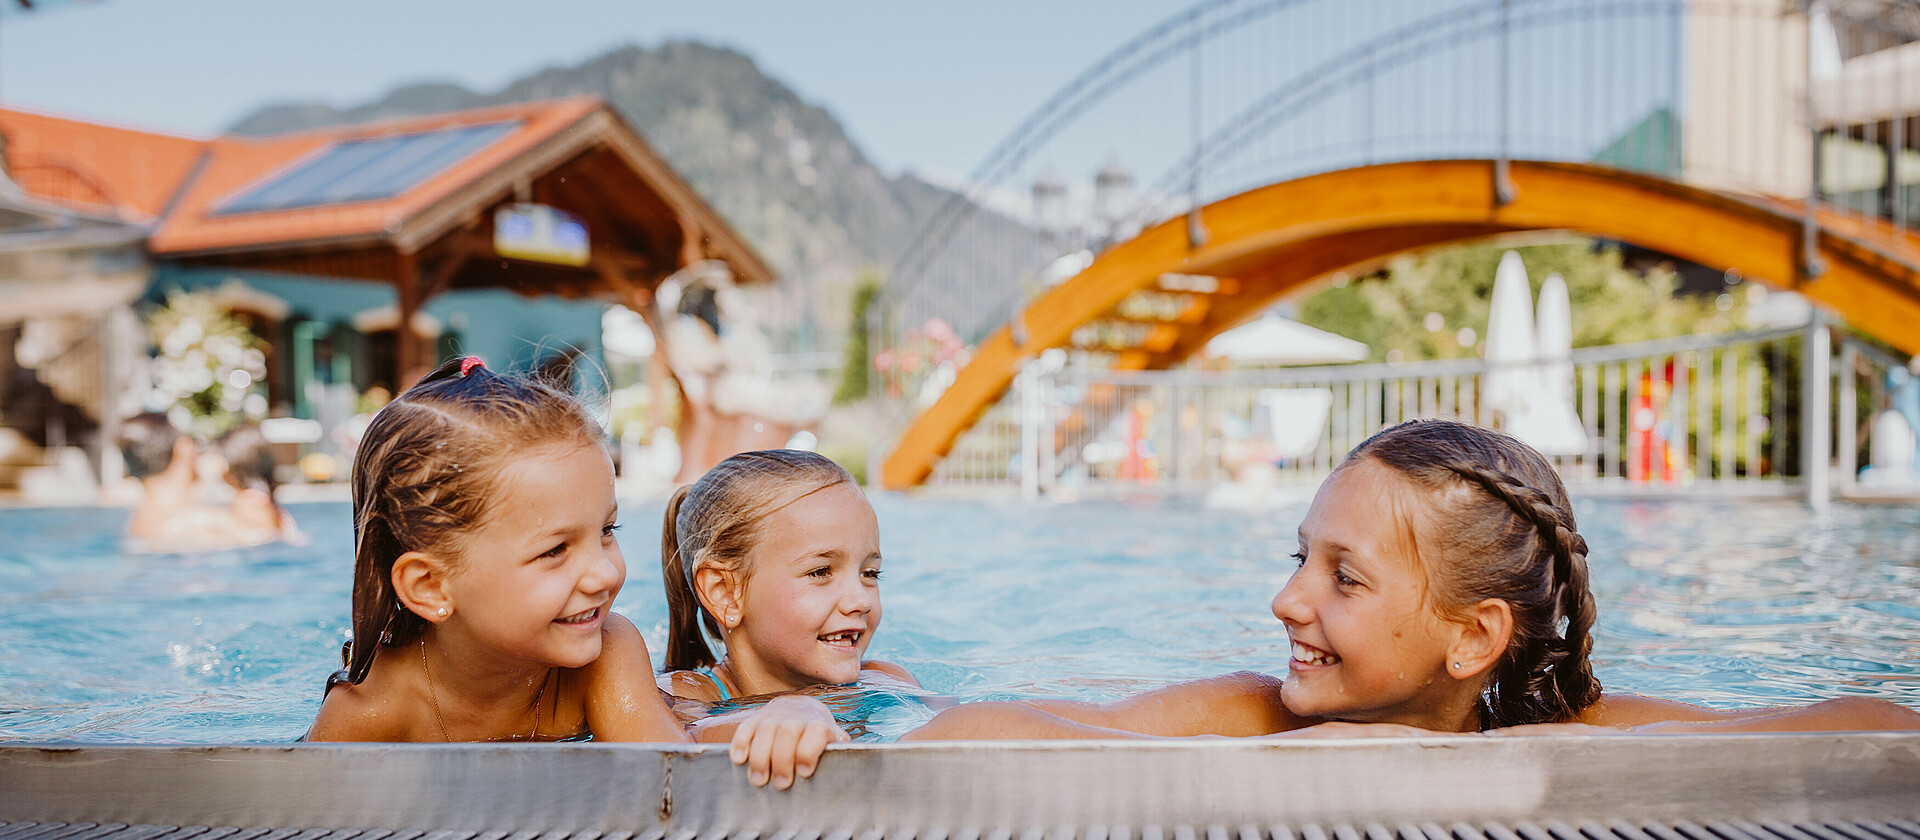 Kinder im Outdoor Pool im Wellnesshotel Berghof im Pongau